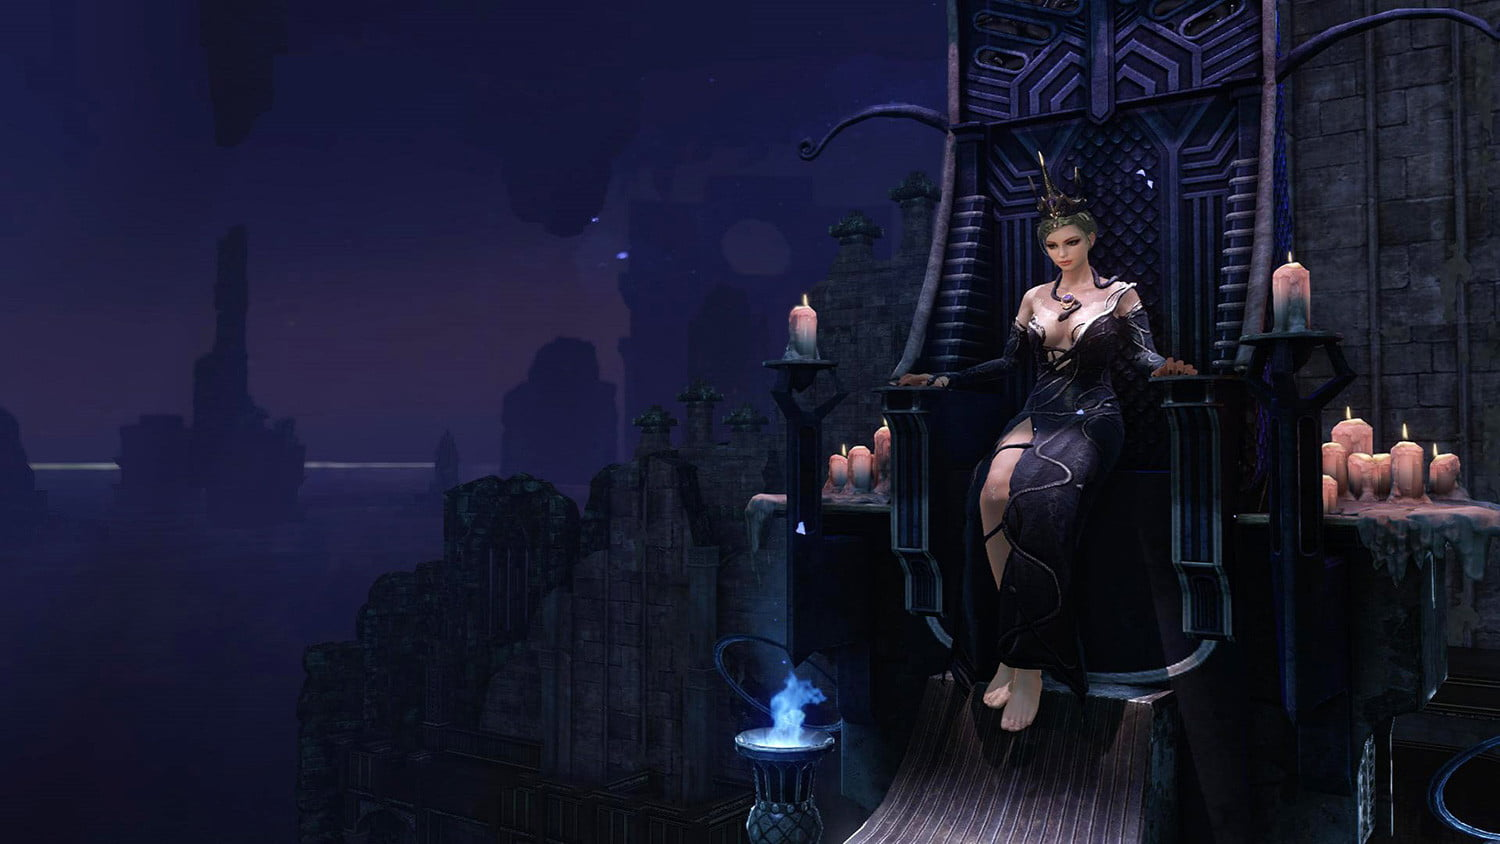 researchers use archeage mmorgp to study human behavior in end times screens 09